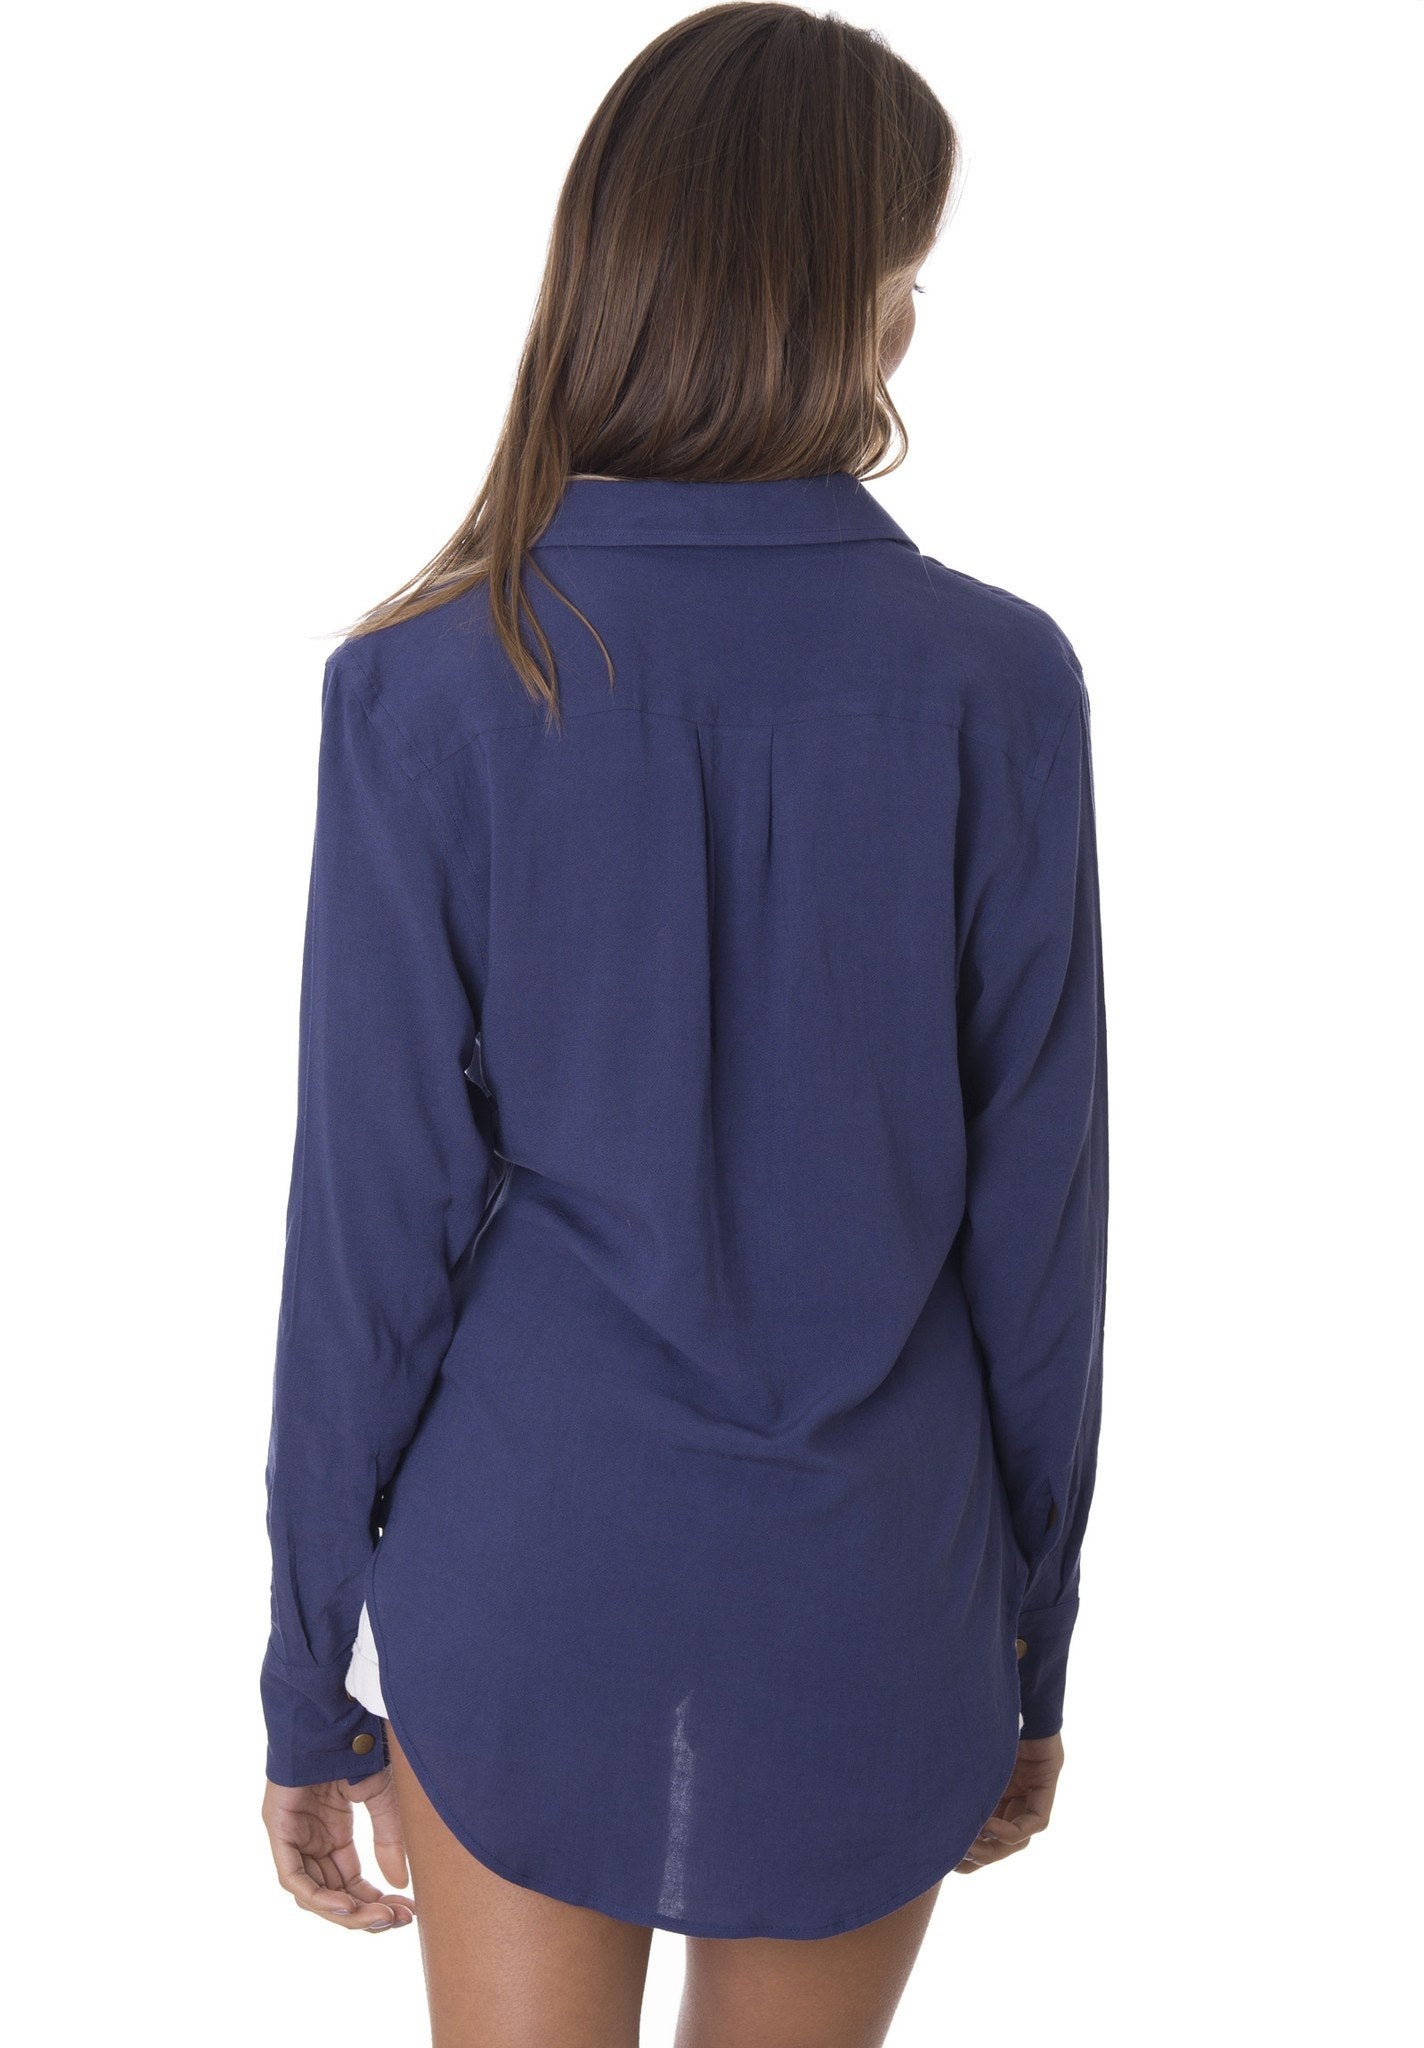 Venus Navy Blue, LACE-UP BLOUSE